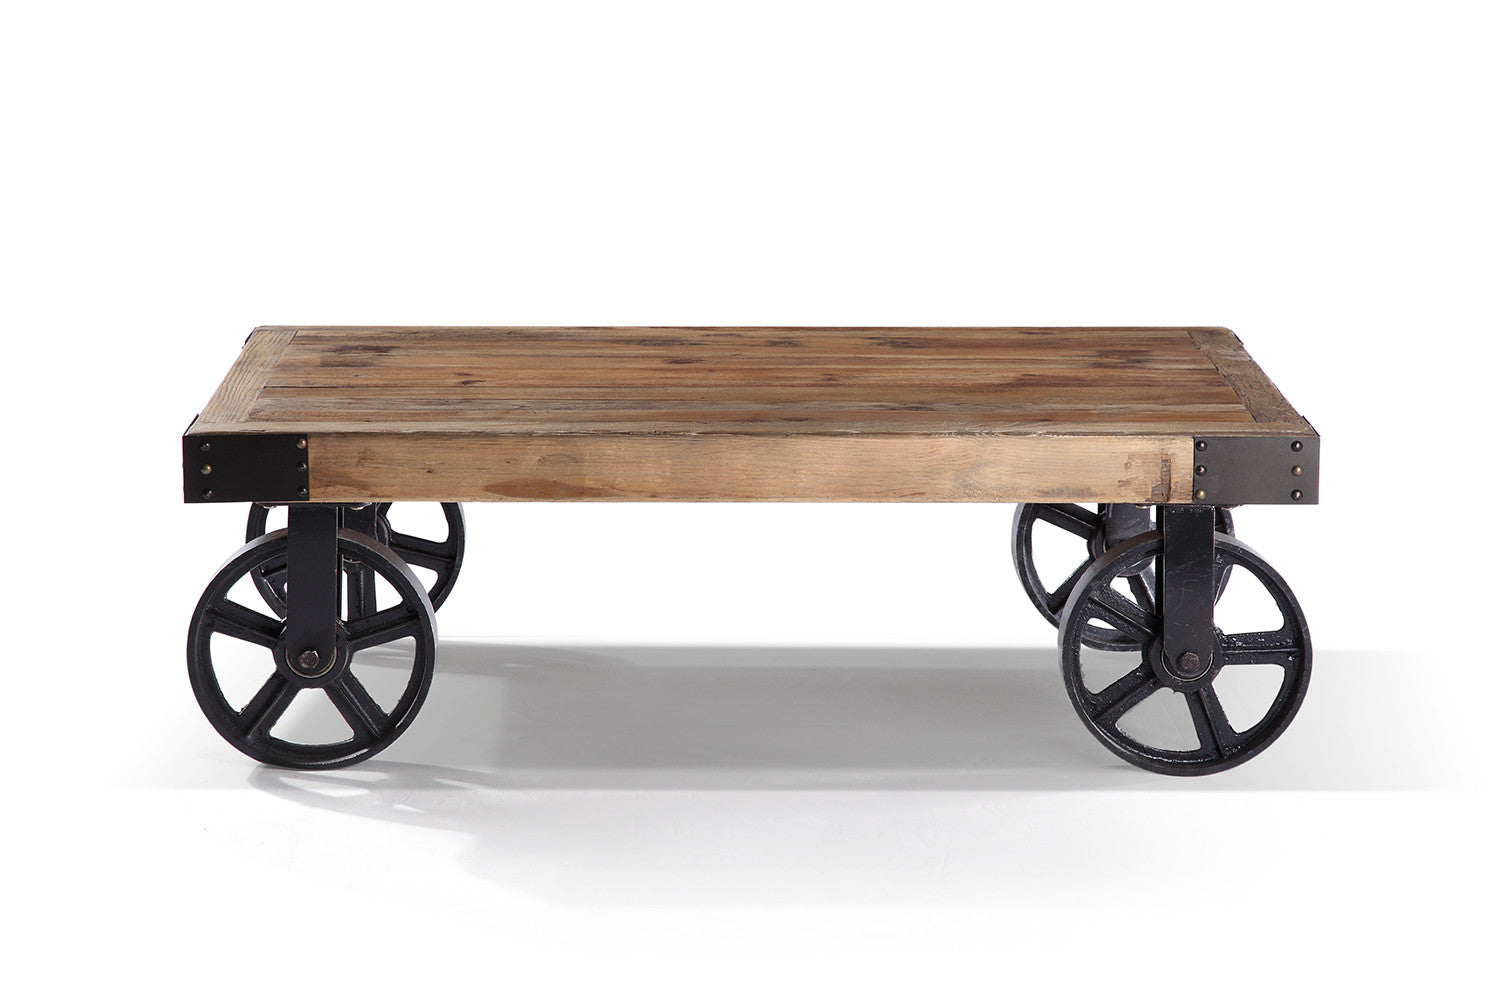 Luxus Table Basse Industriel Id Es De Conception De Table Basse # Grande Table Basse Carre Indus